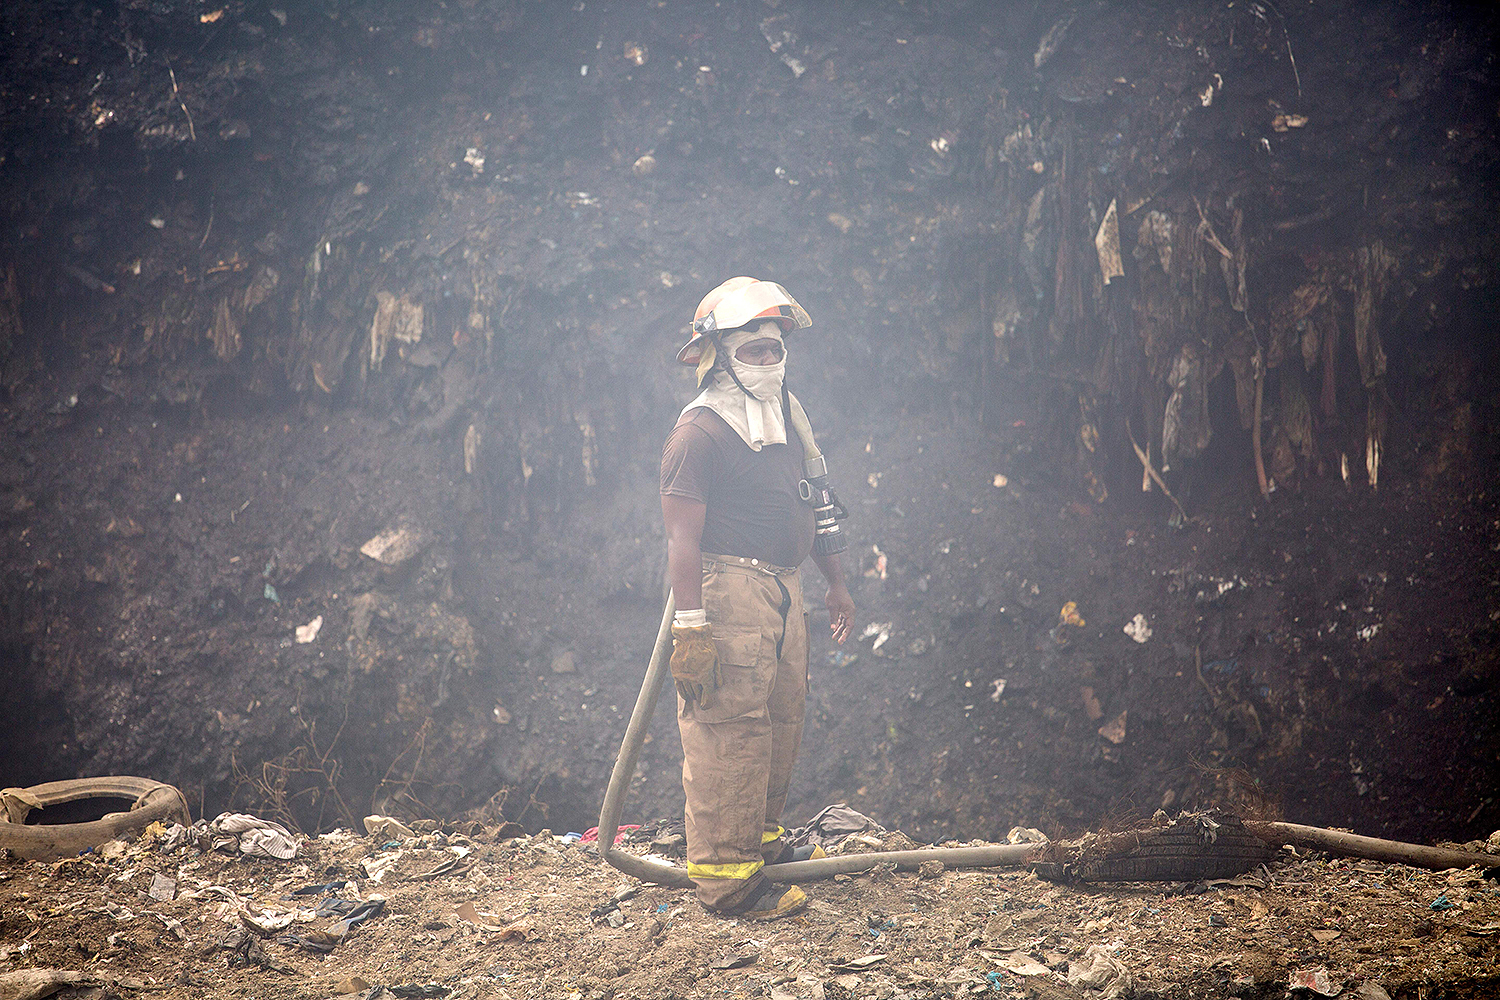 A firefighter takes a break from putting out a fire that had been burning for four days at the Duquesa landfill in Santo Domingo on May 2. The fire was the second to occur in less than a month—attributed to the high temperatures in the Dominican Republic, combined with gas generated by the waste. ERIKA SANTELICES/afp/AFP via Getty Images